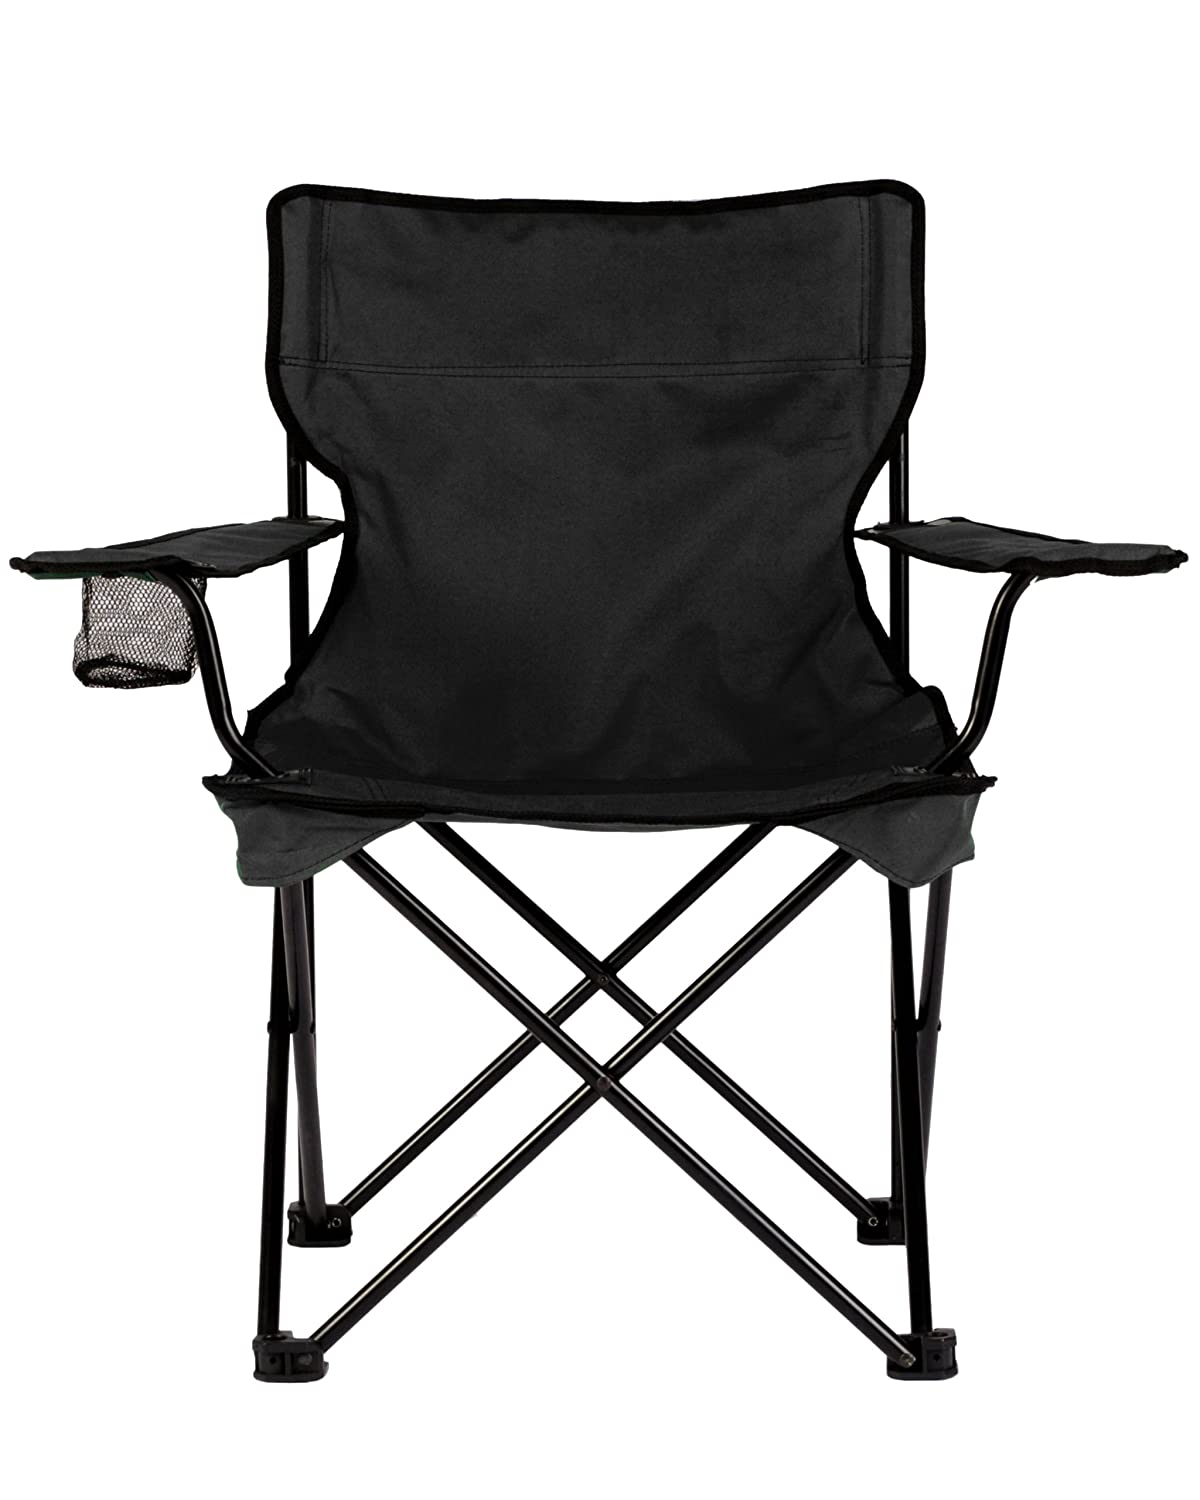 comfortable for kids garden chairs patio folding of camping full chair size